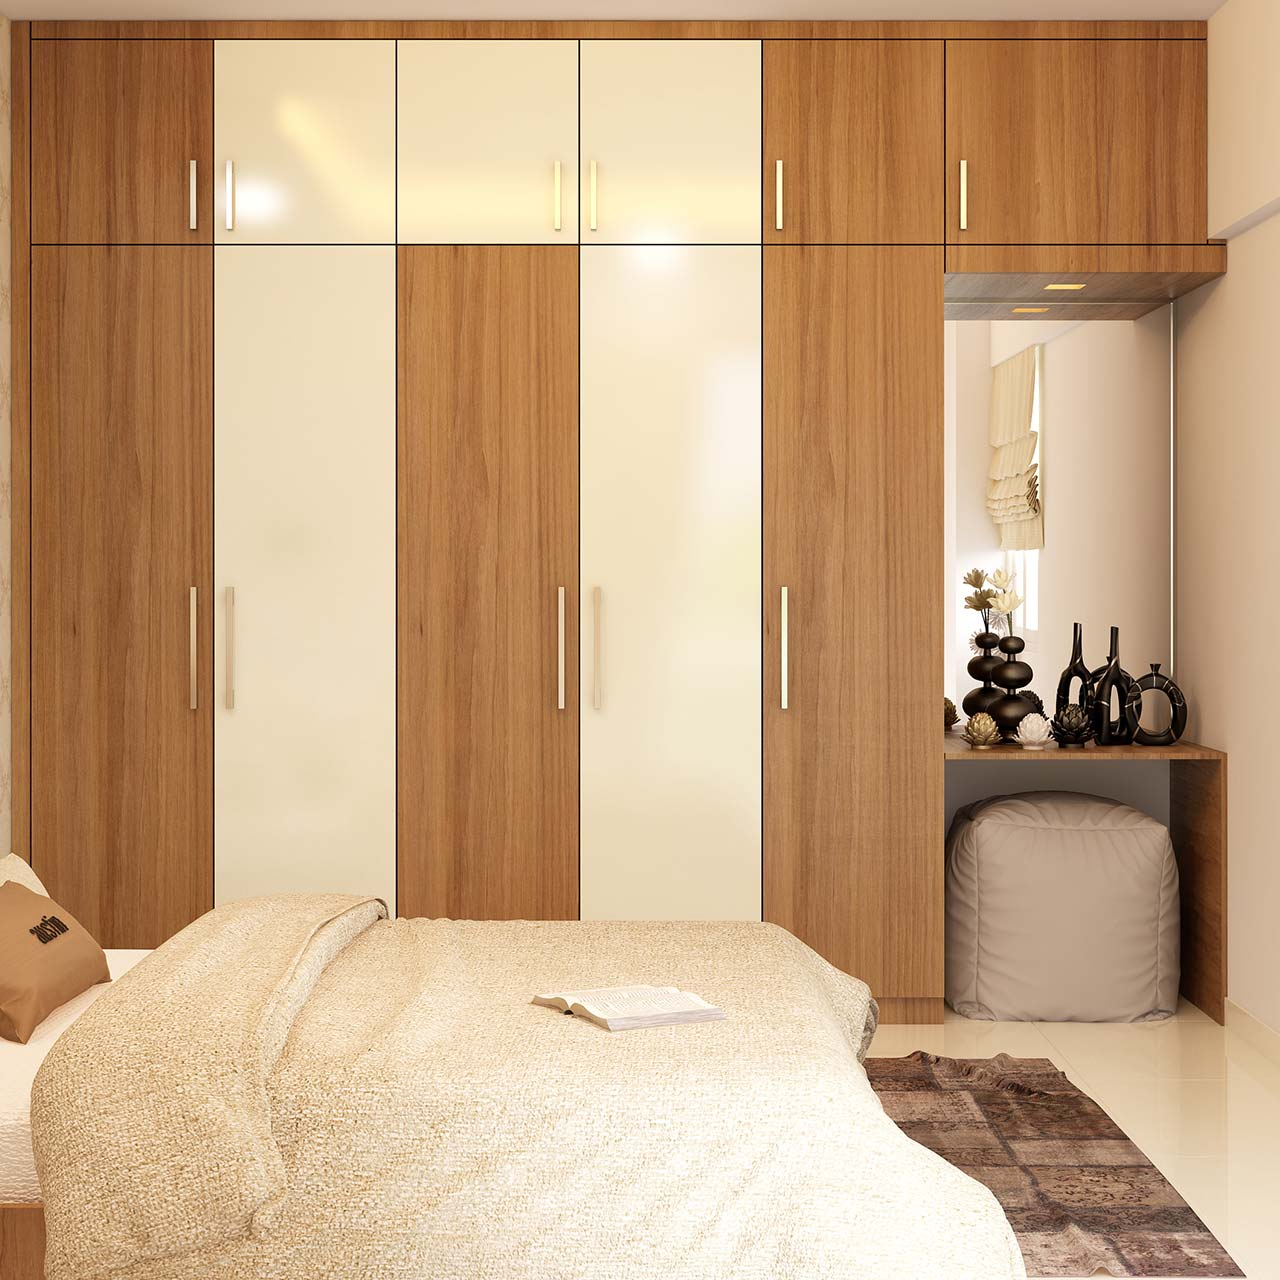 How to interior design your bedroom